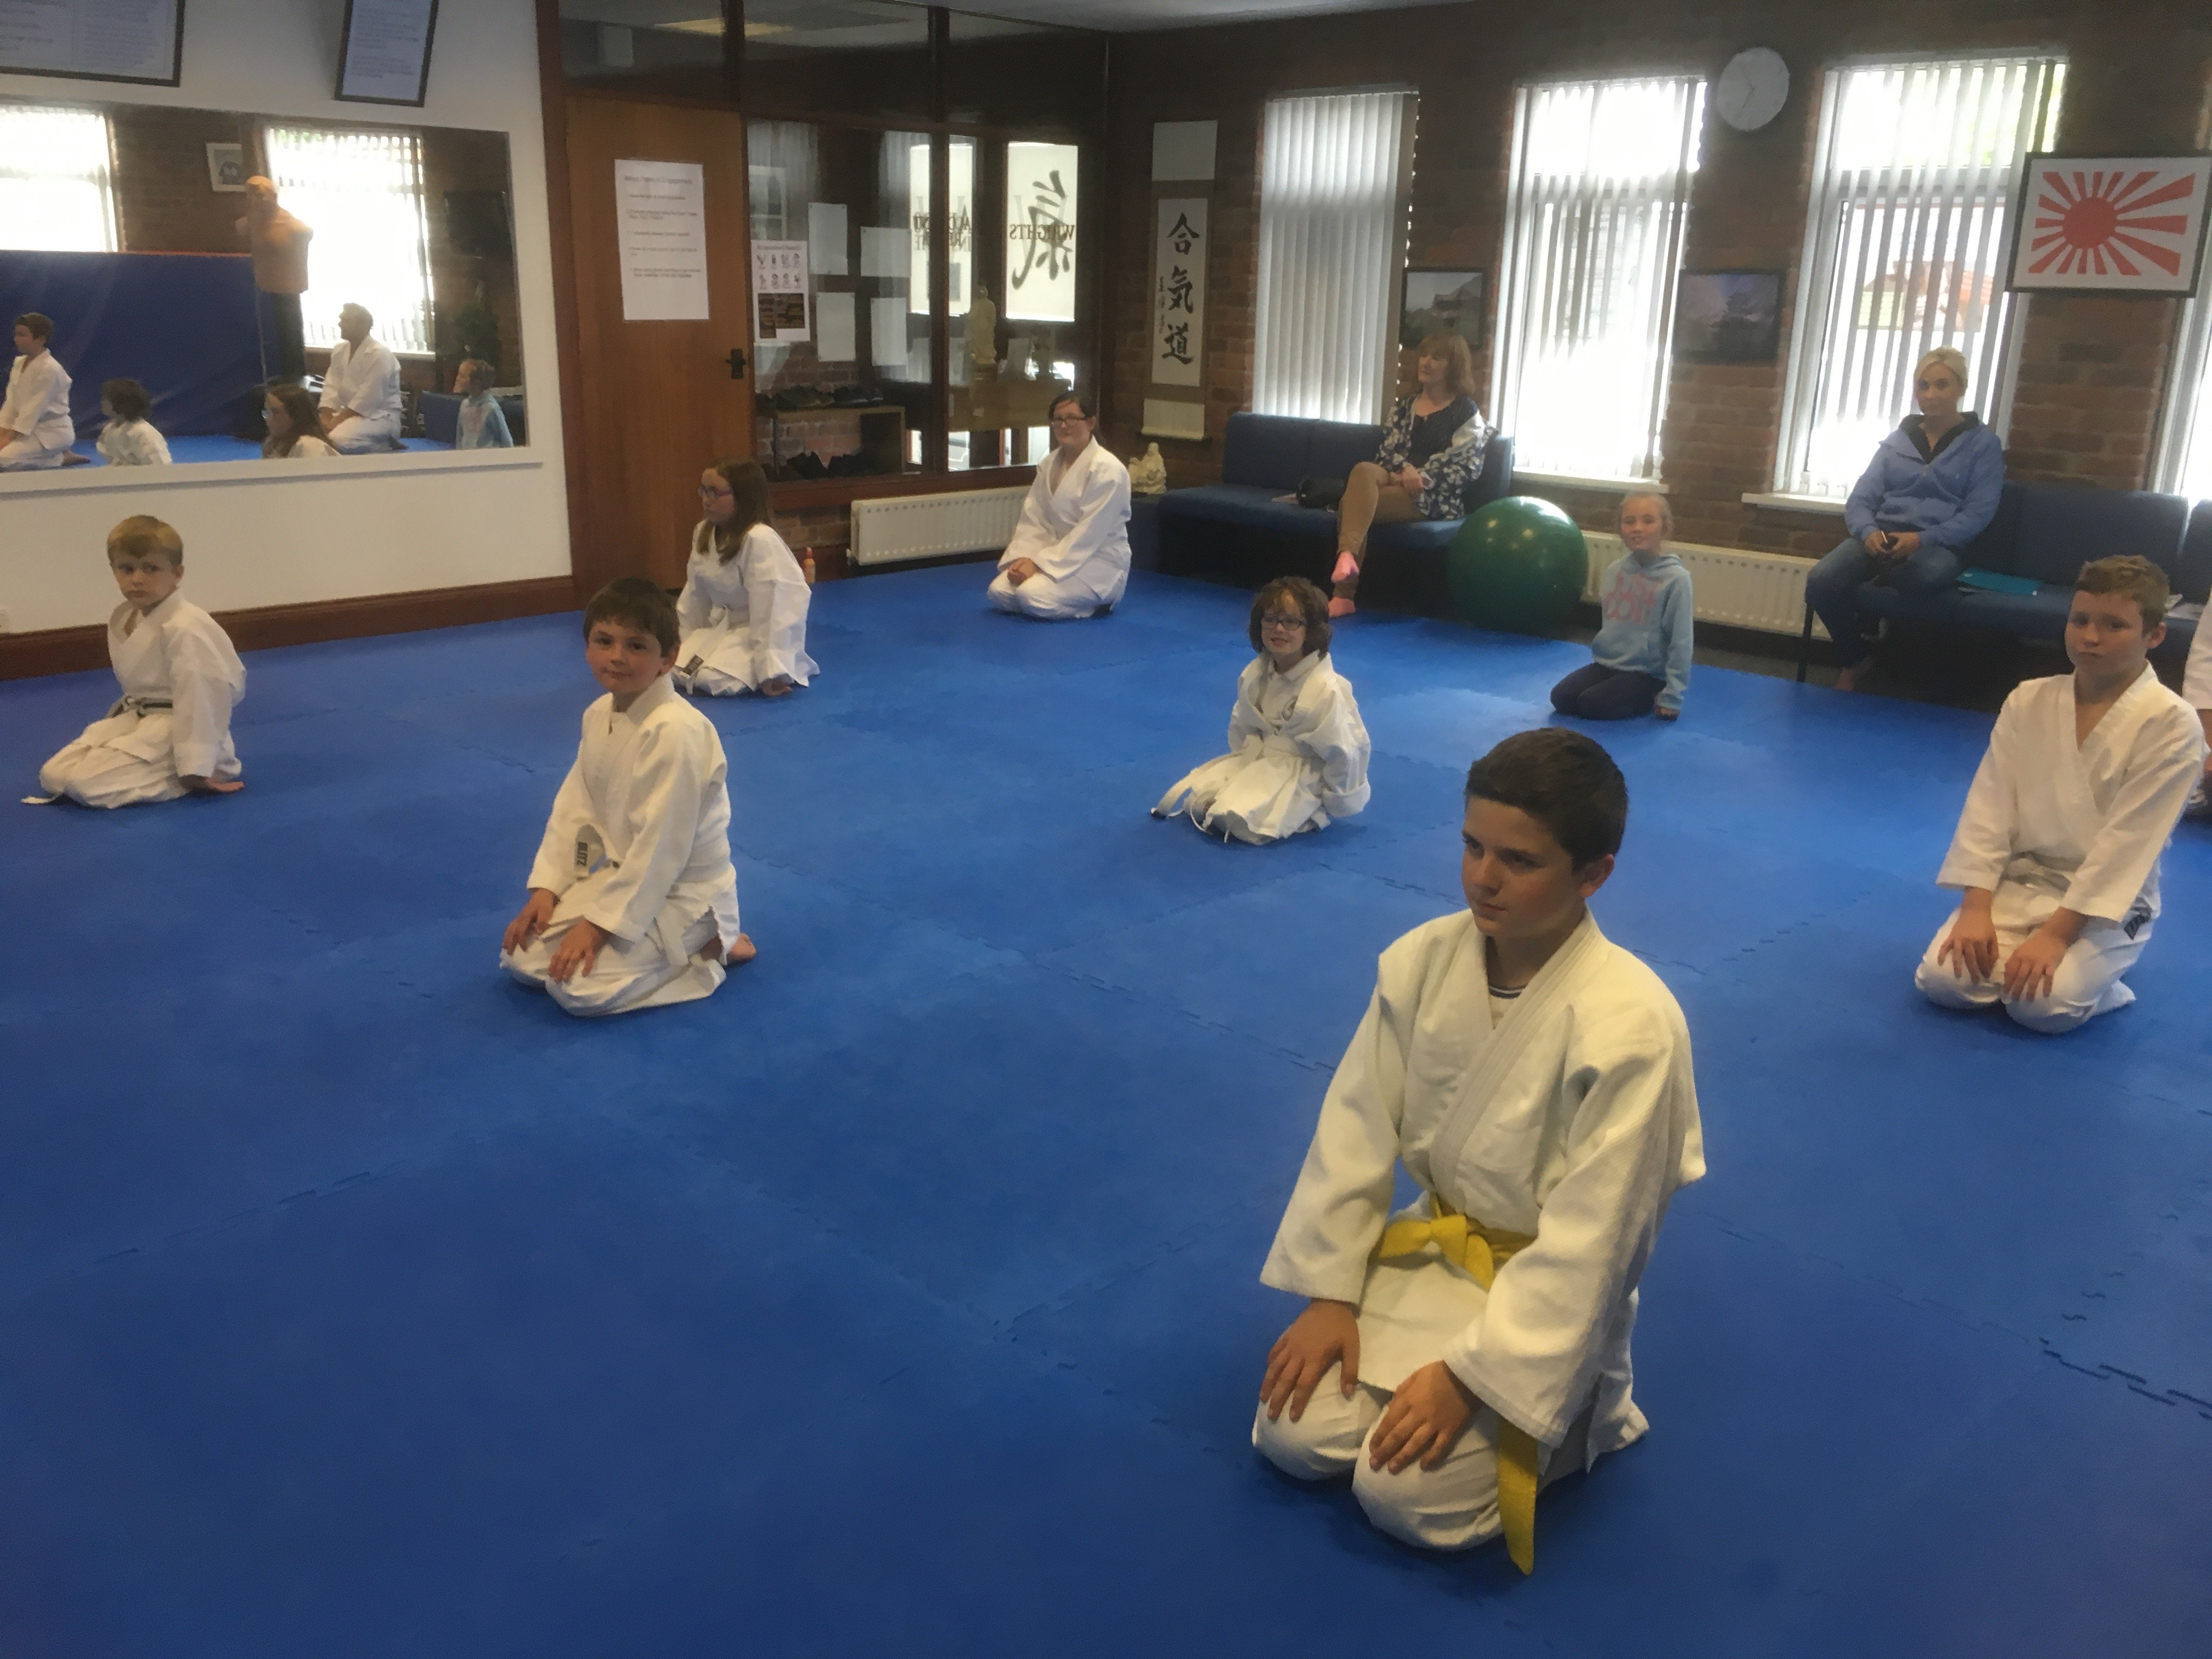 Class of aikido students kneeling on blue floor